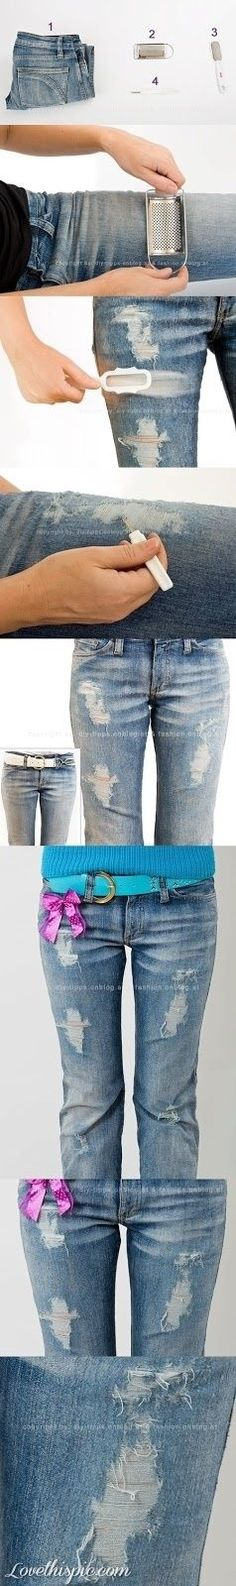 DIY Ripped Jeans Look crafts craft ideas easy crafts diy ...